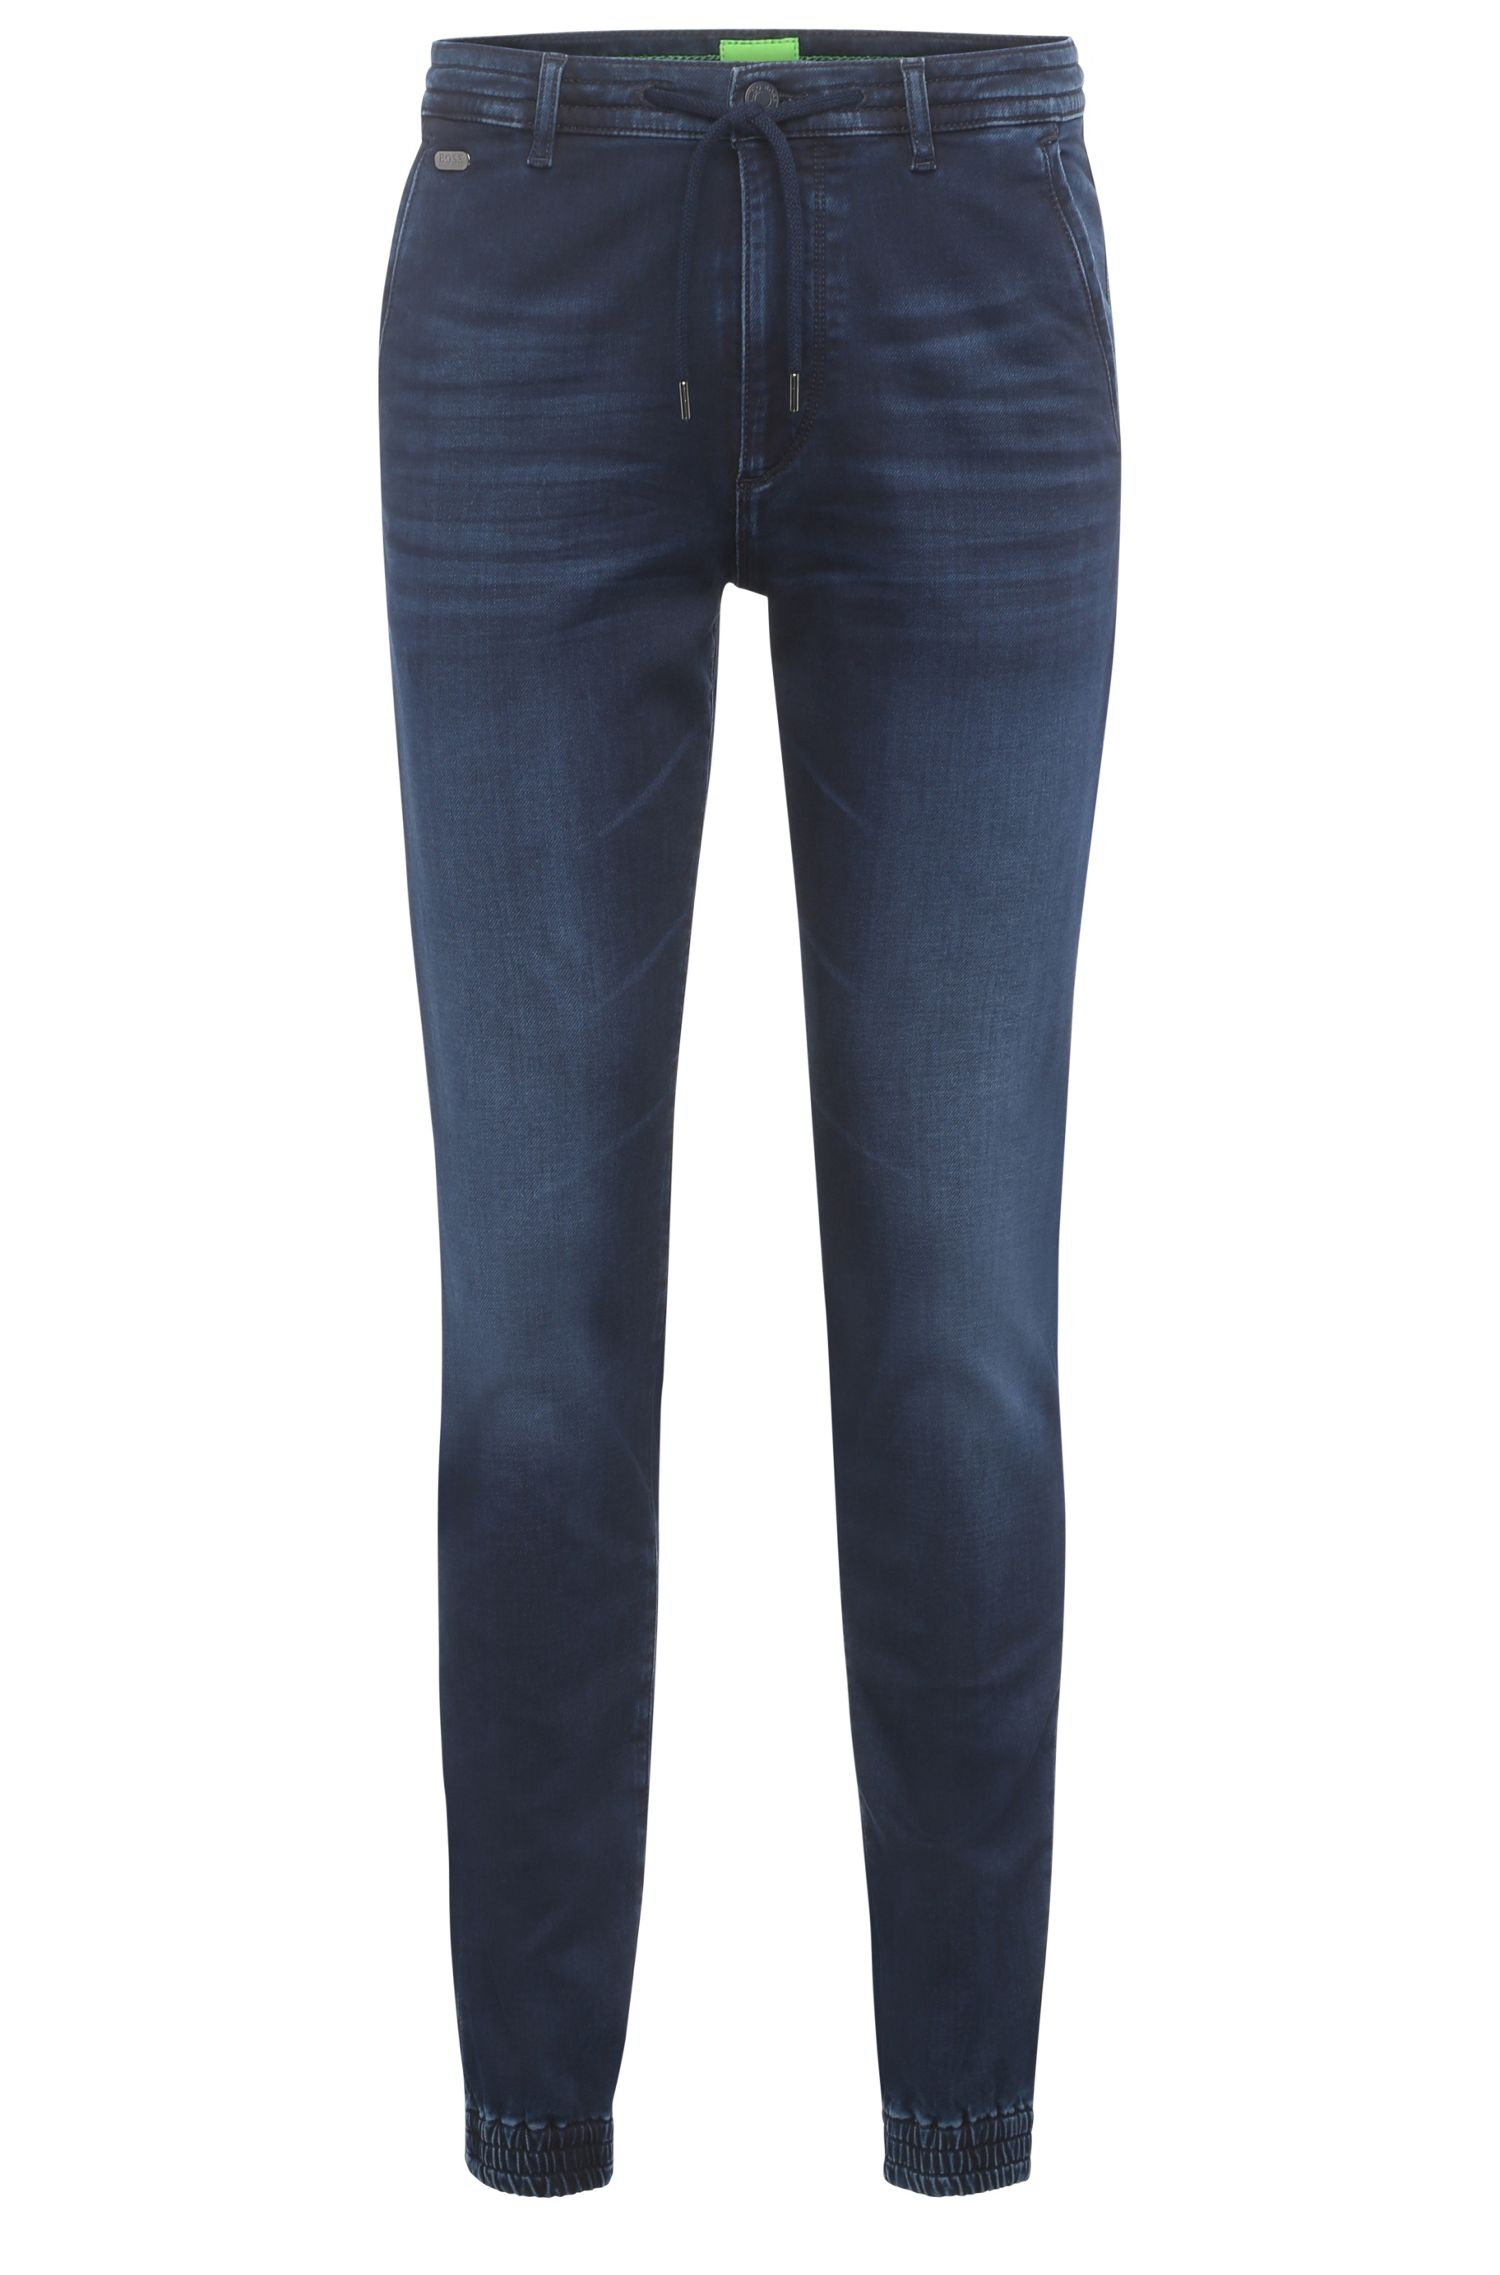 Jeans Tapered Fit en coton extensible au look jogging : « Darrel2 »